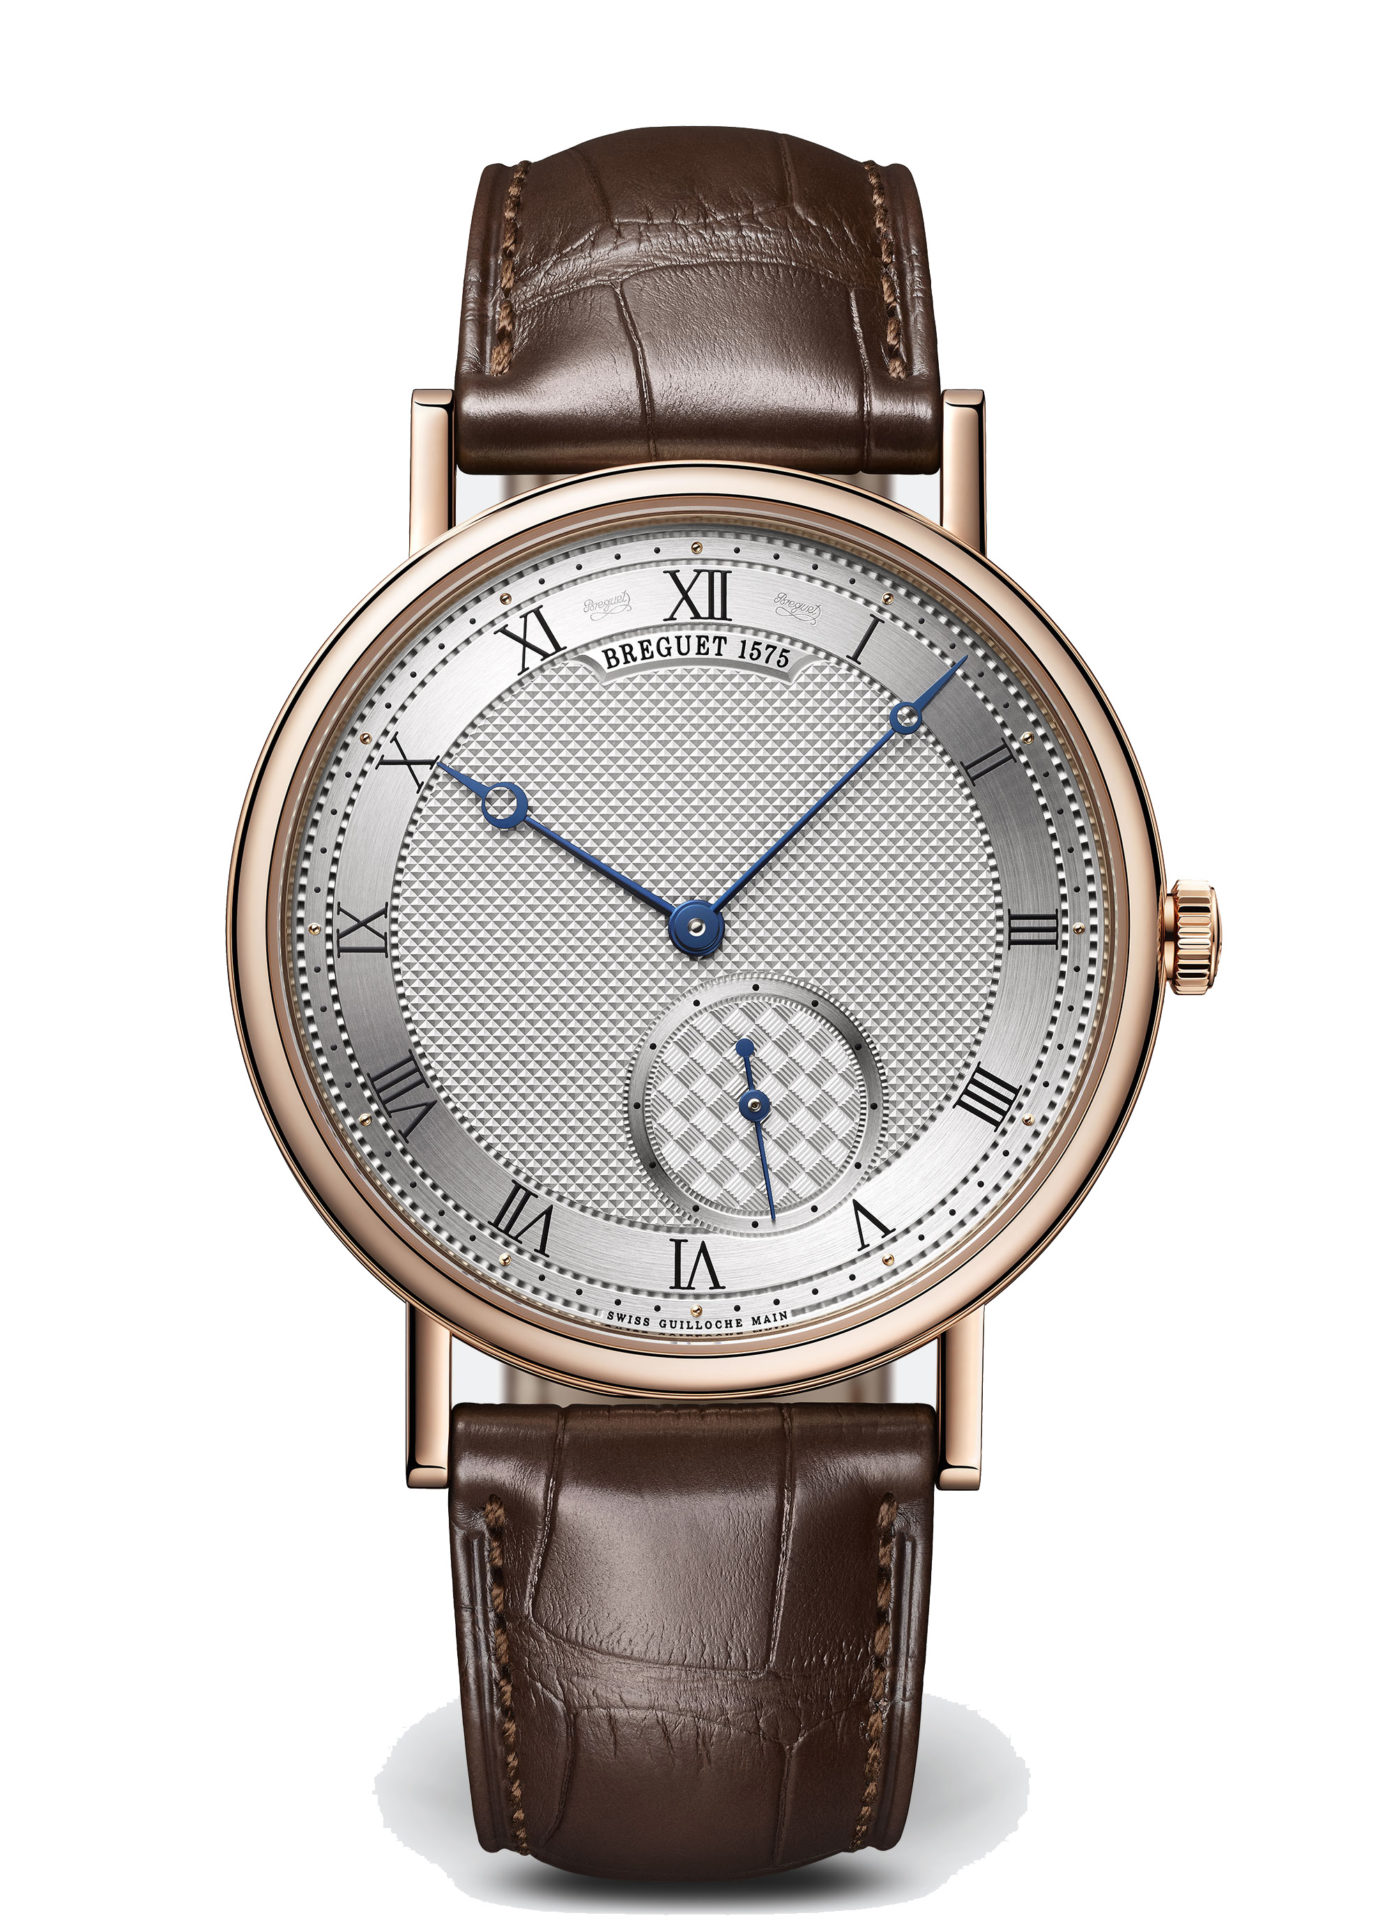 Breguet-Classique-7147-Hall-of-Time-7147br-12-9wu-pr